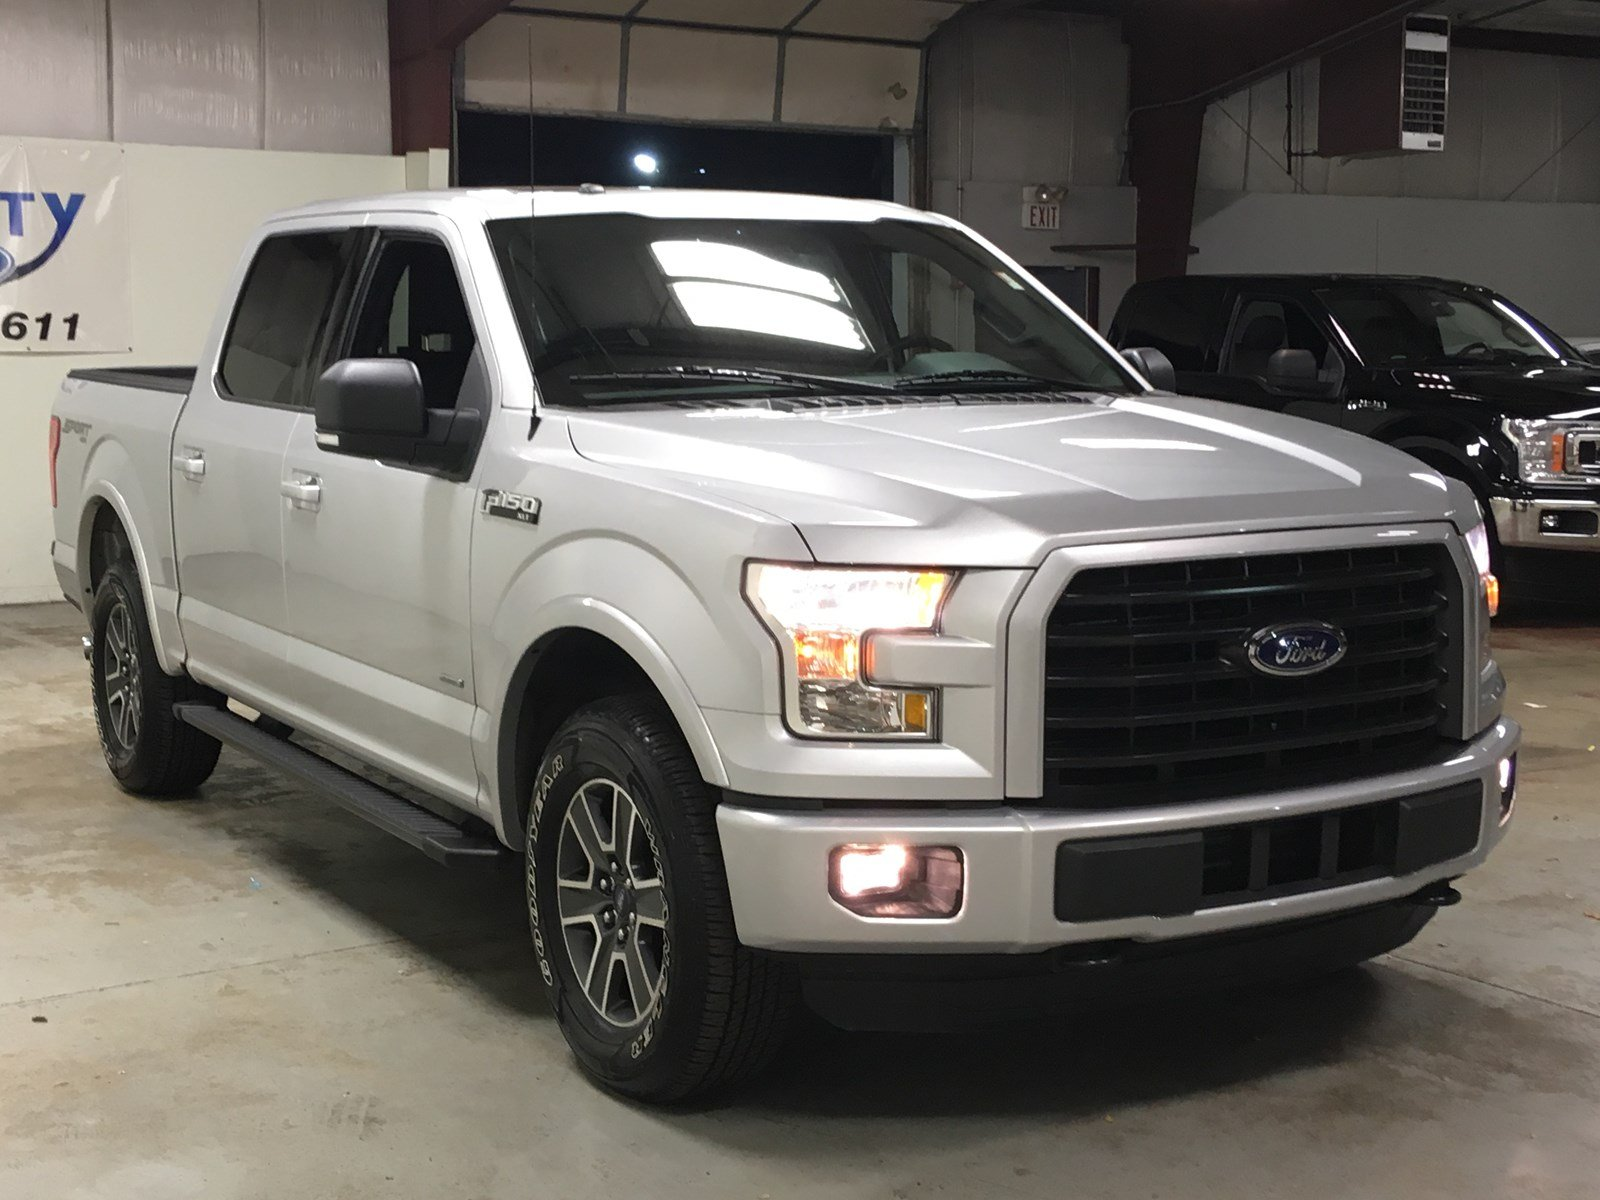 Certified Pre-Owned 2016 Ford F-150 XLT 302A 4X4 Crew Cab